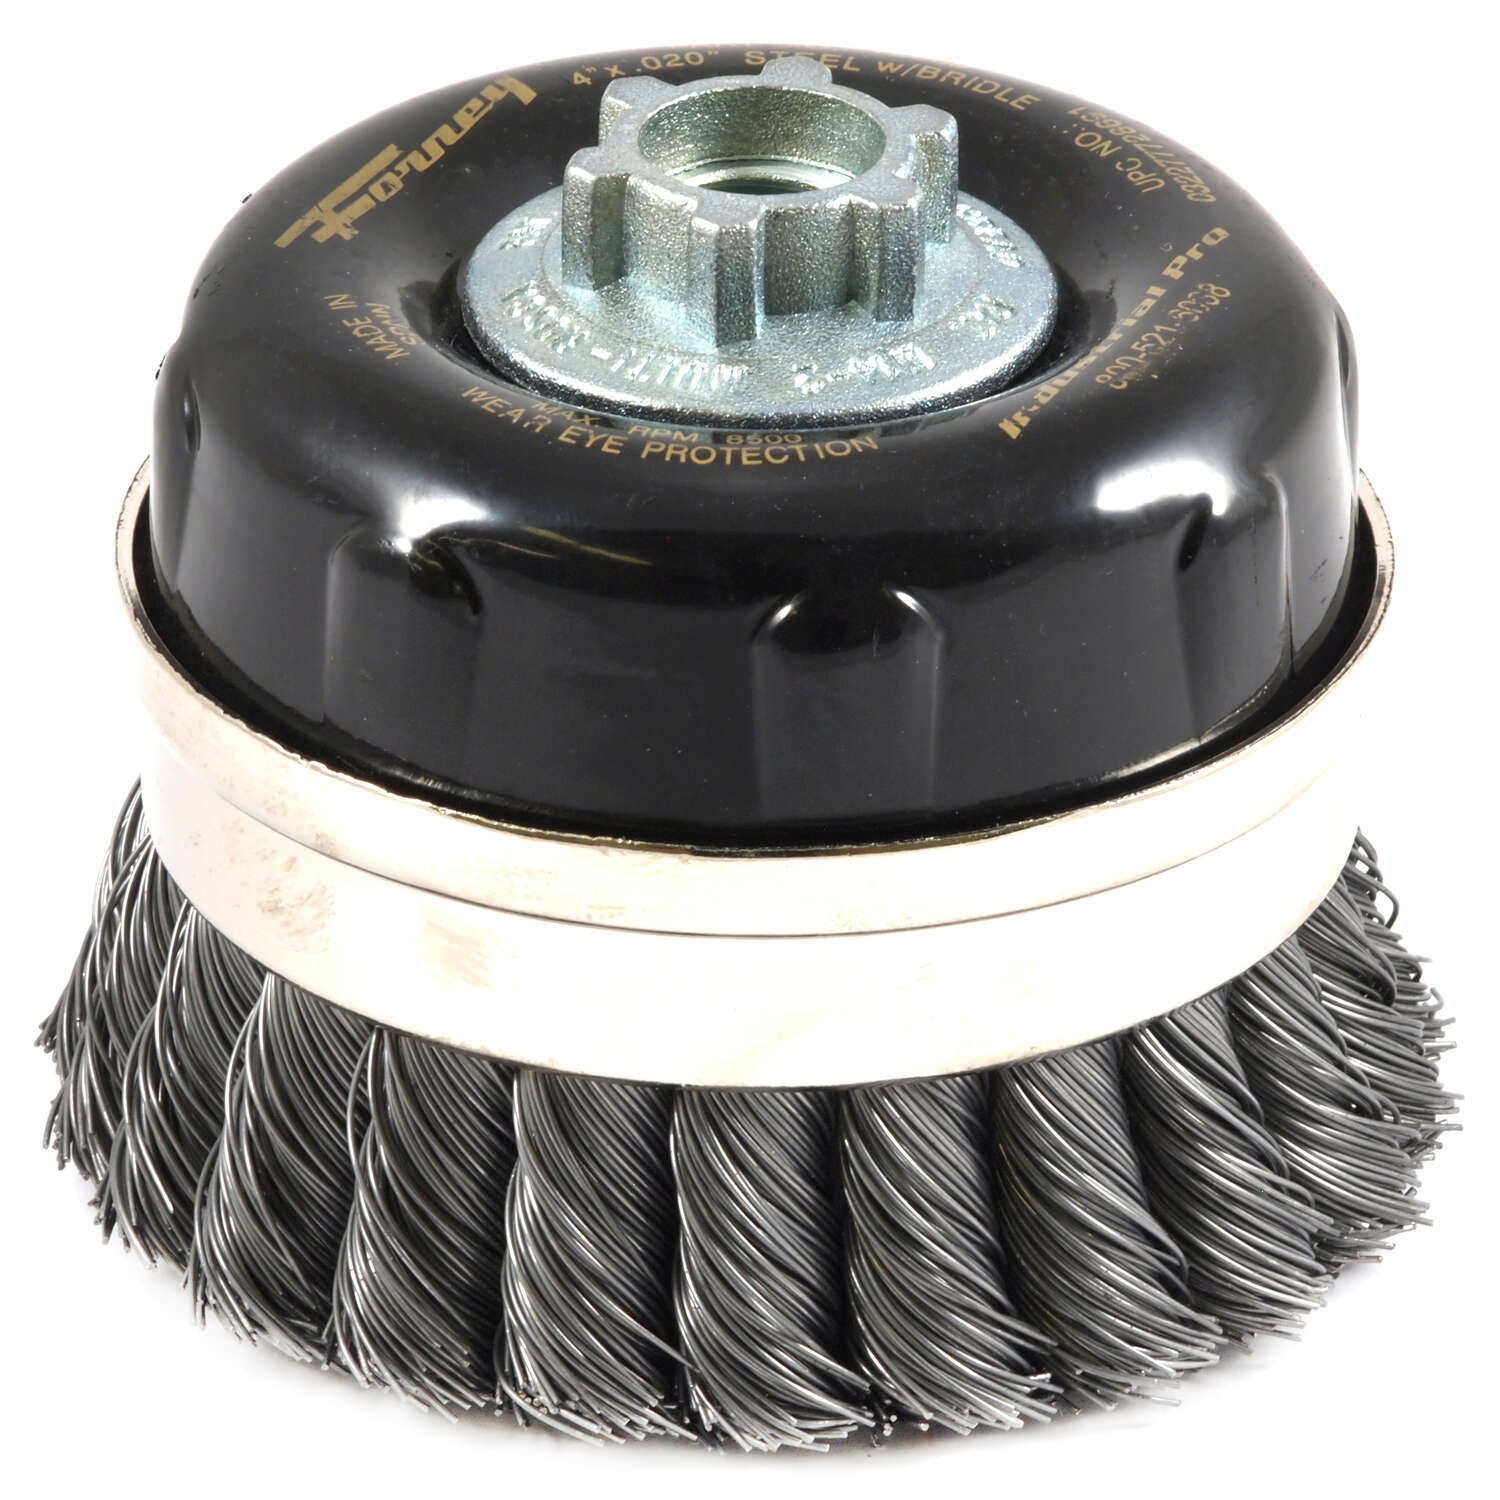 Forney  4 in. Dia. x 5/8 in.  Knotted  Steel  Cup Brush  8500 rpm 1 pc.